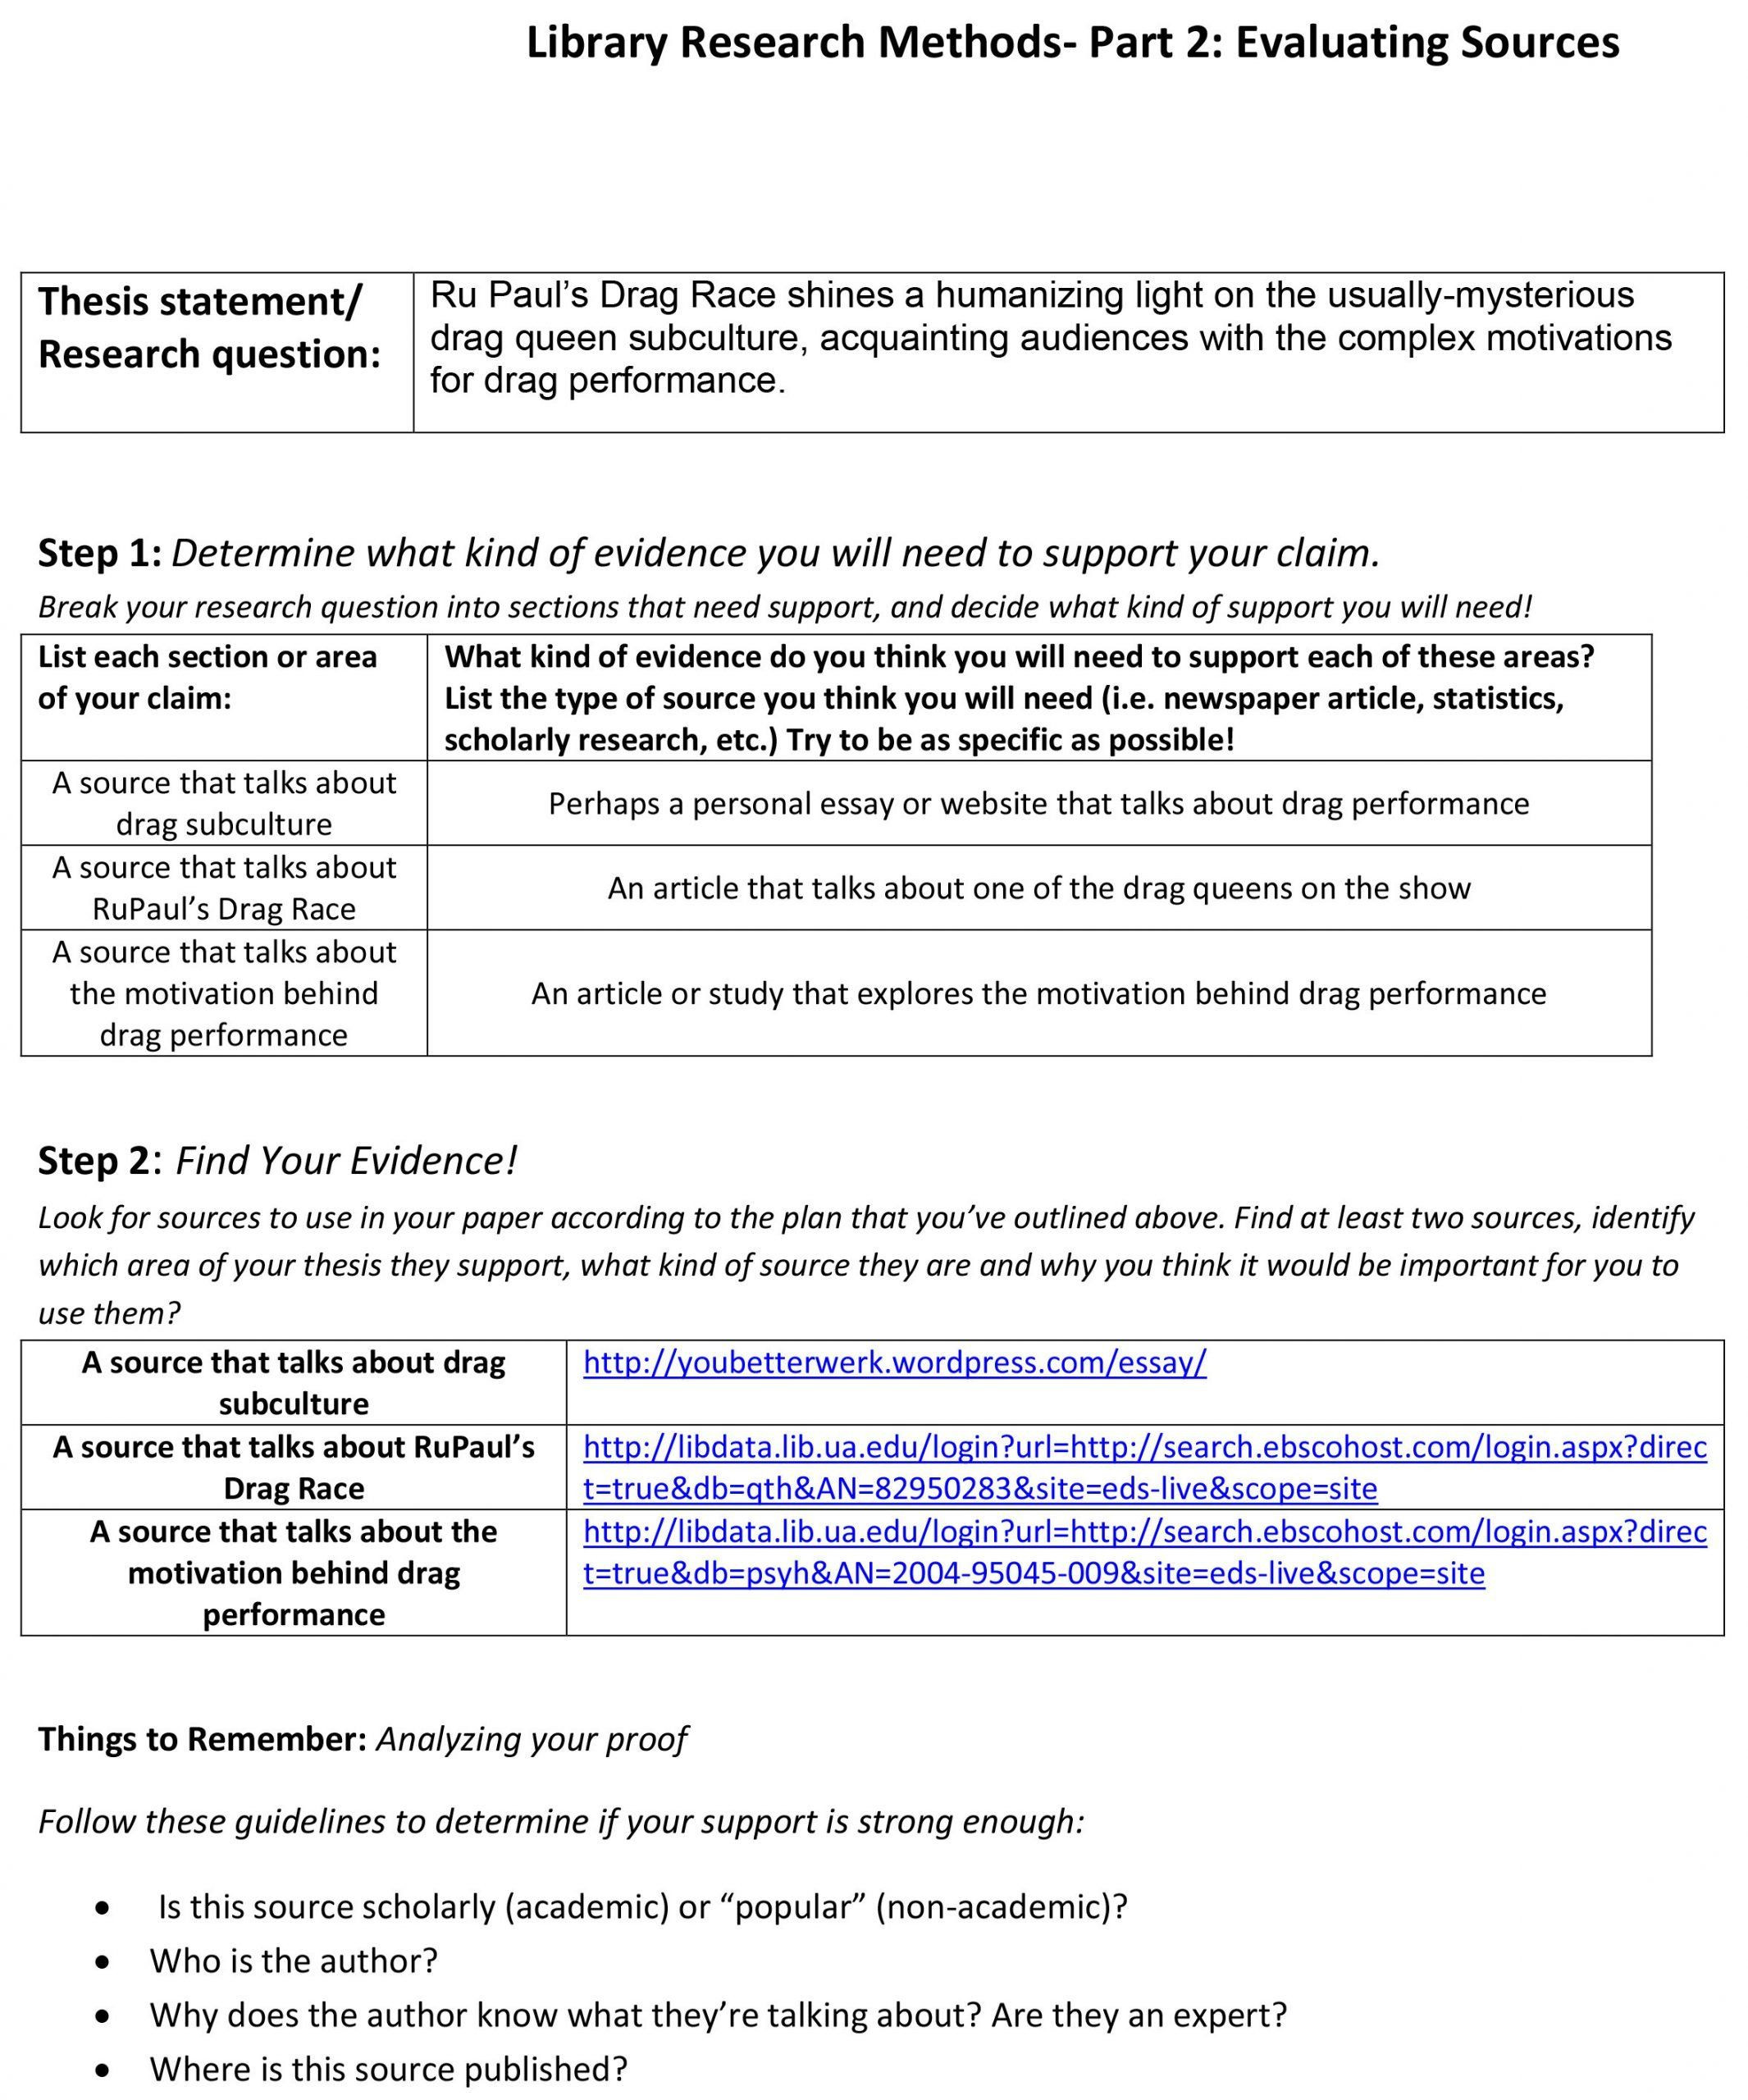 Citing sources Worksheet 5th Grade Citing sources Worksheet 5th Grade Evaluating sources